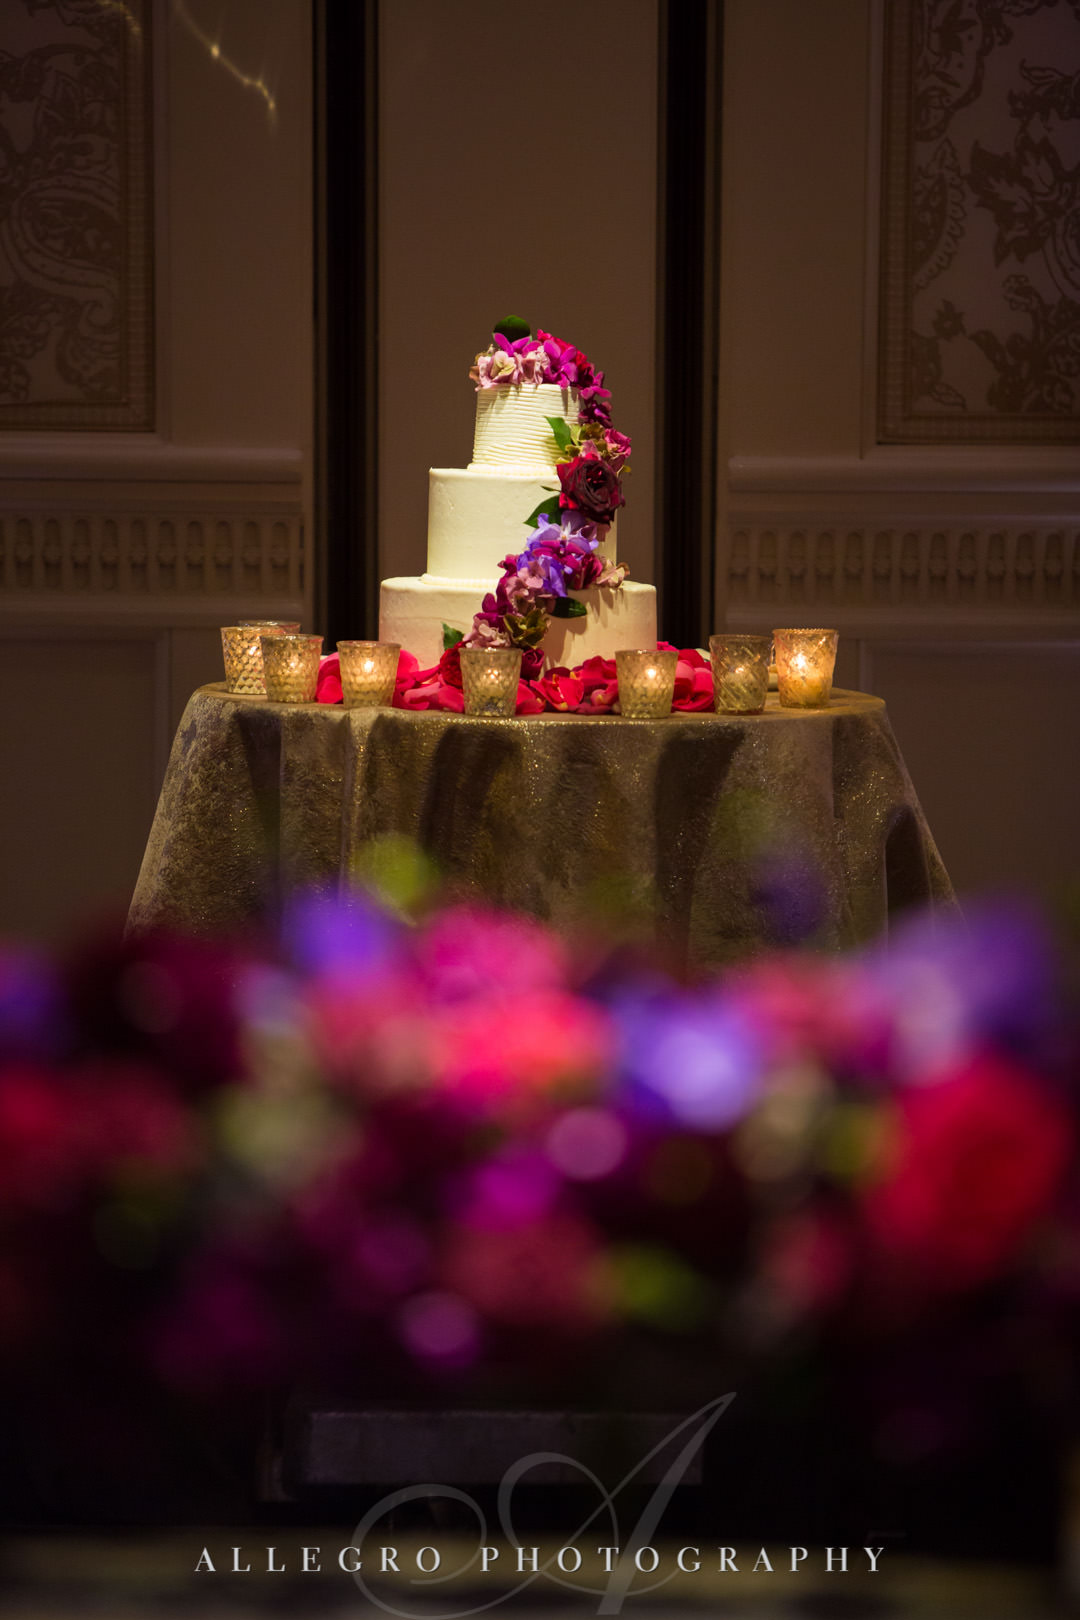 Wedding cake with flowers | Allegro Photography